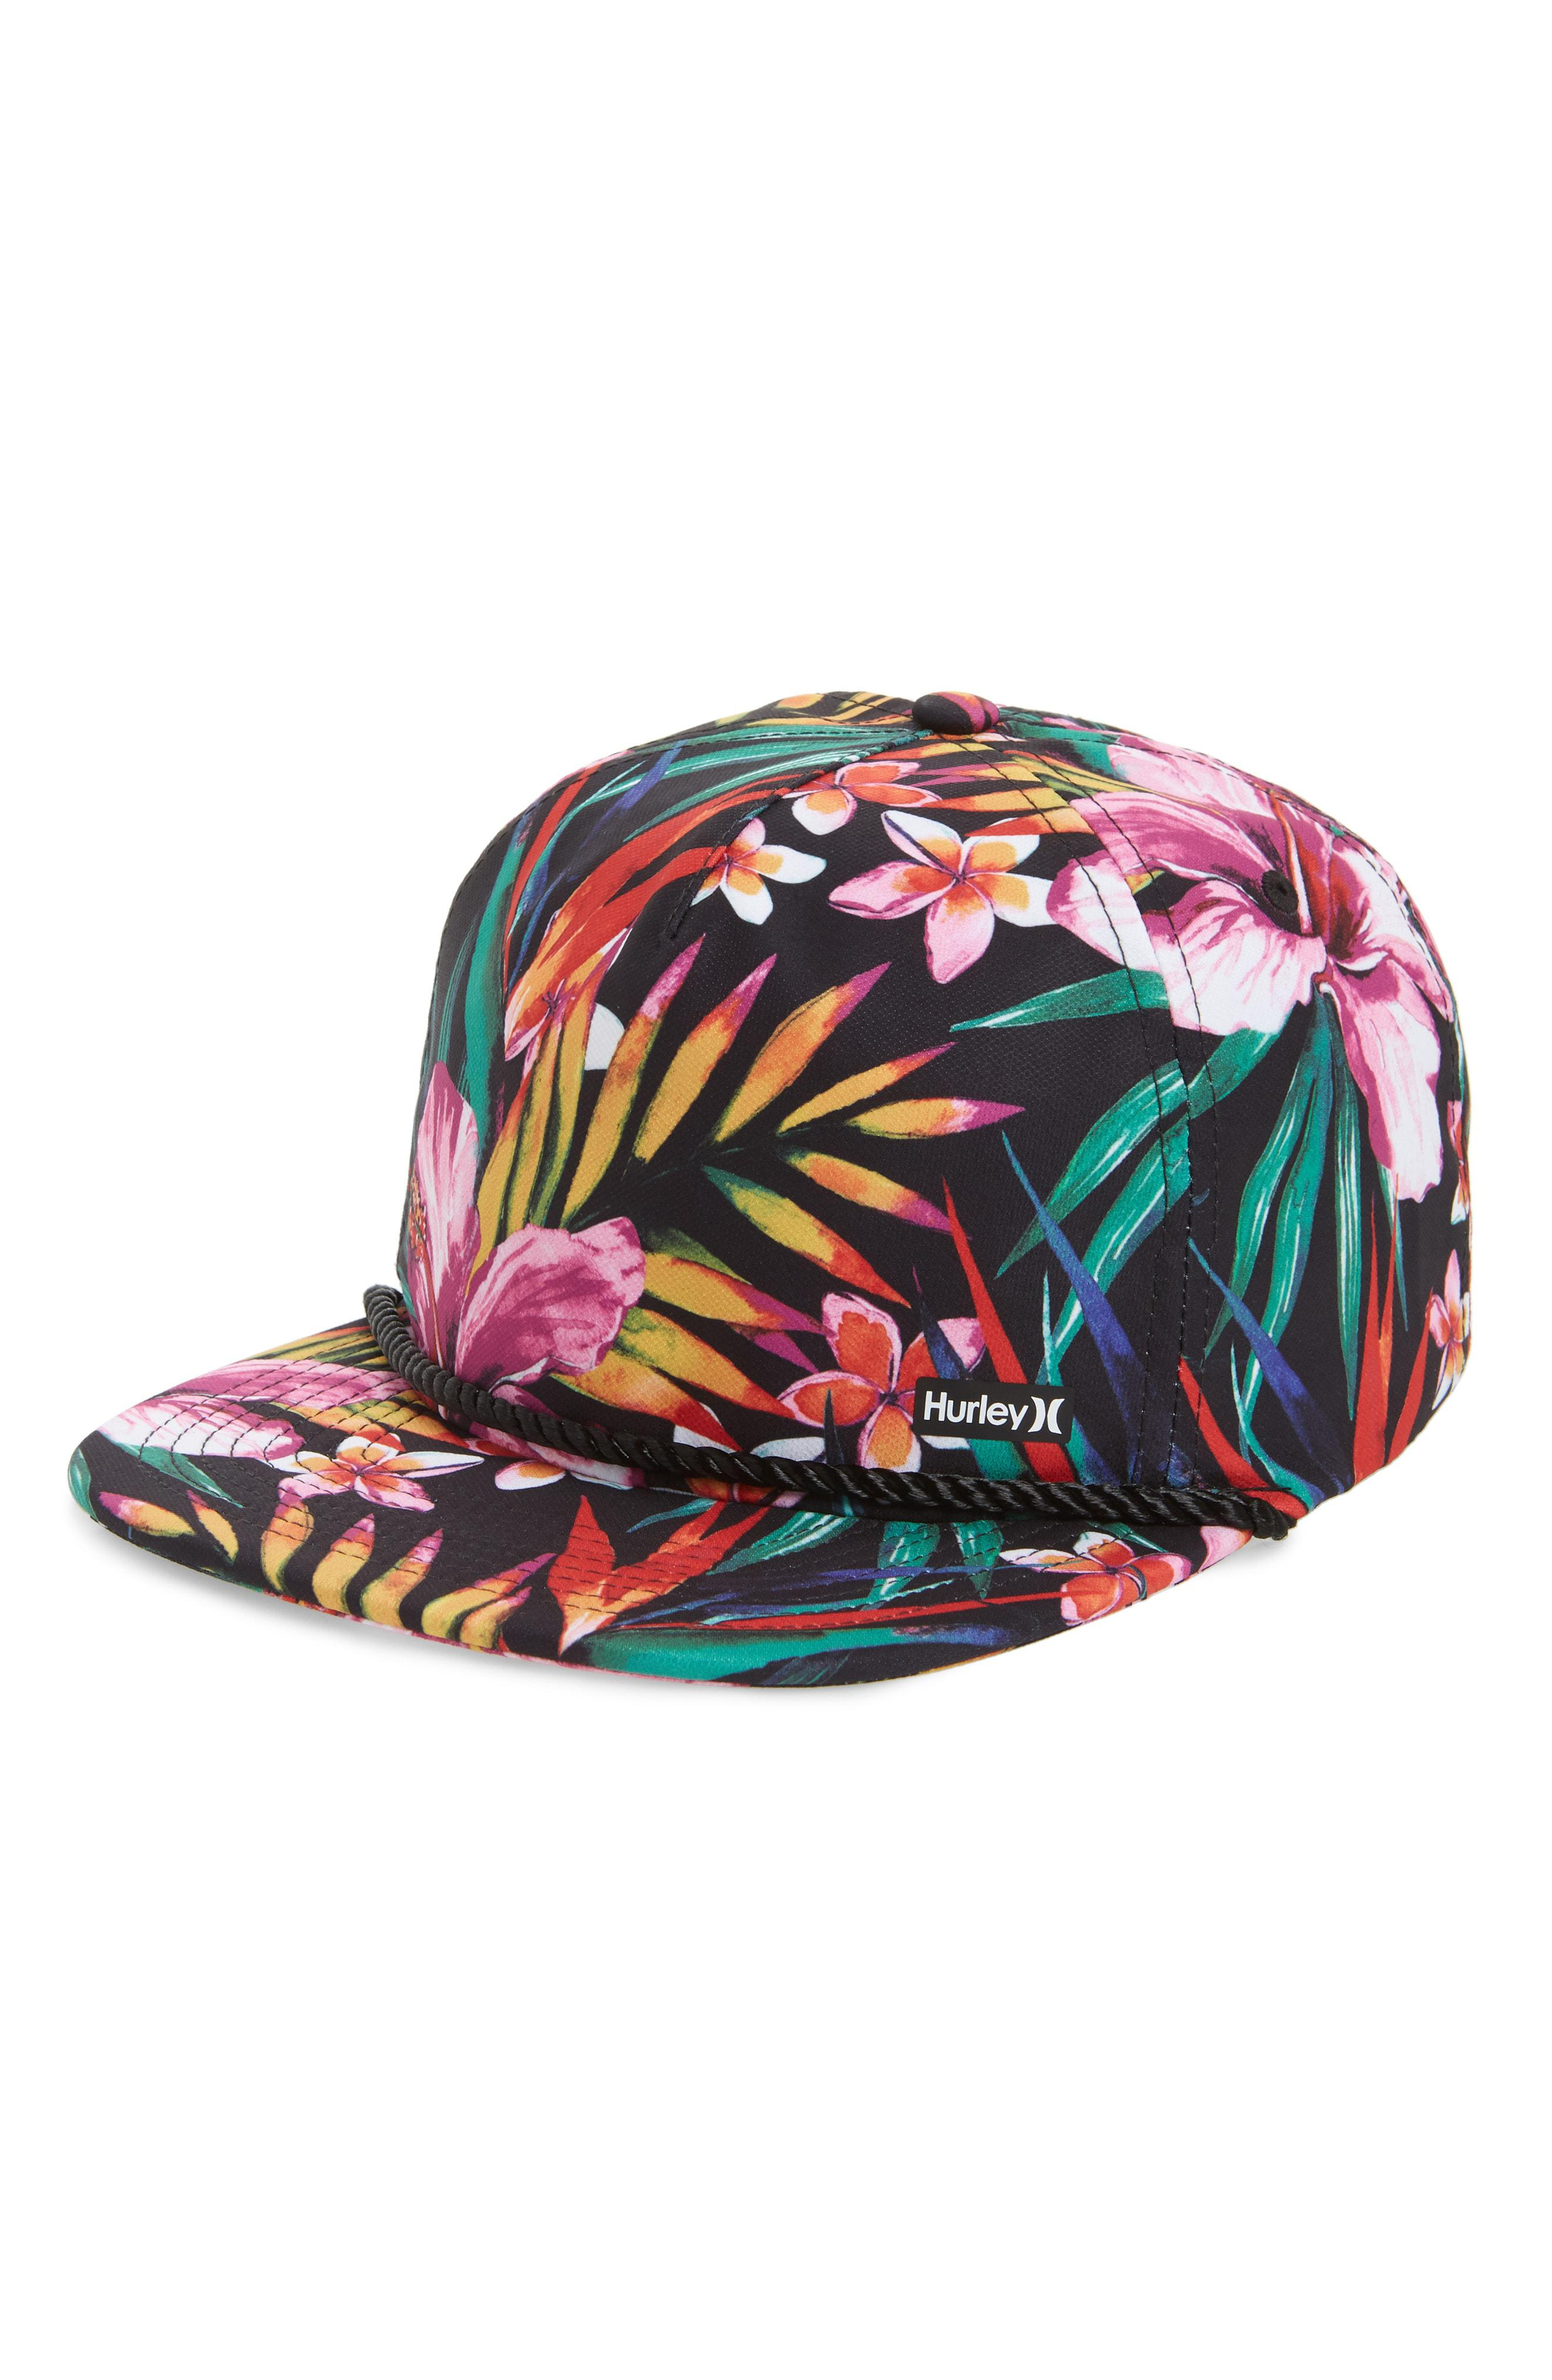 the best attitude 5a634 51bac Hurley Dri-fit Garden Print Hat in Black for Men - Lyst